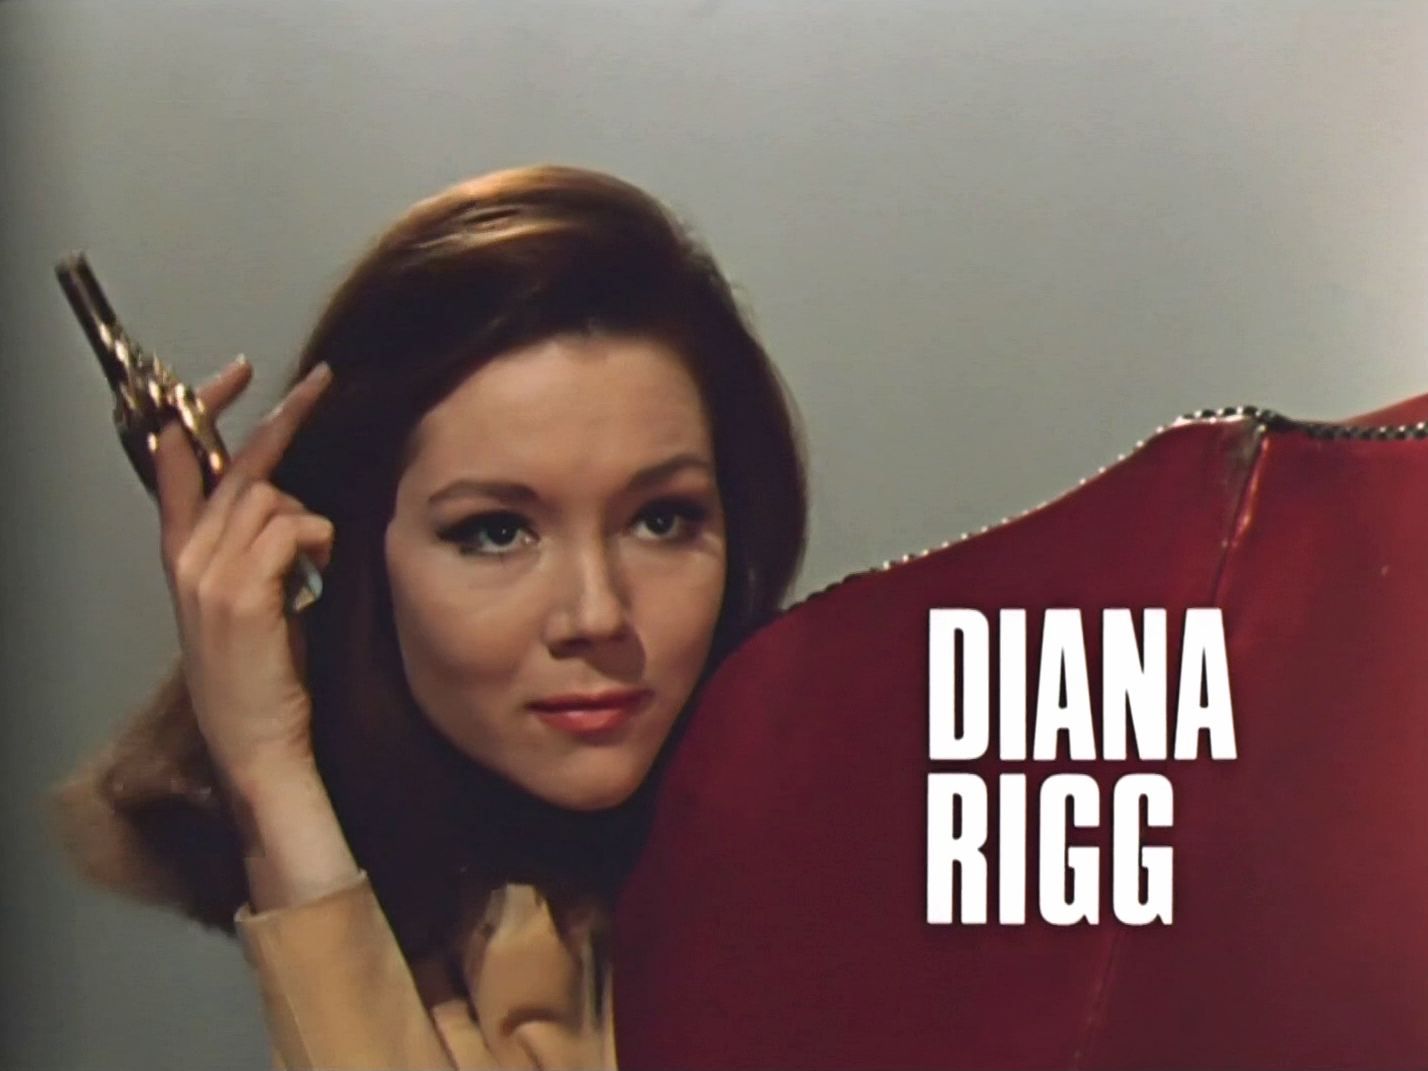 Main title from The Avengers (1961-69) (5). Diana Rigg